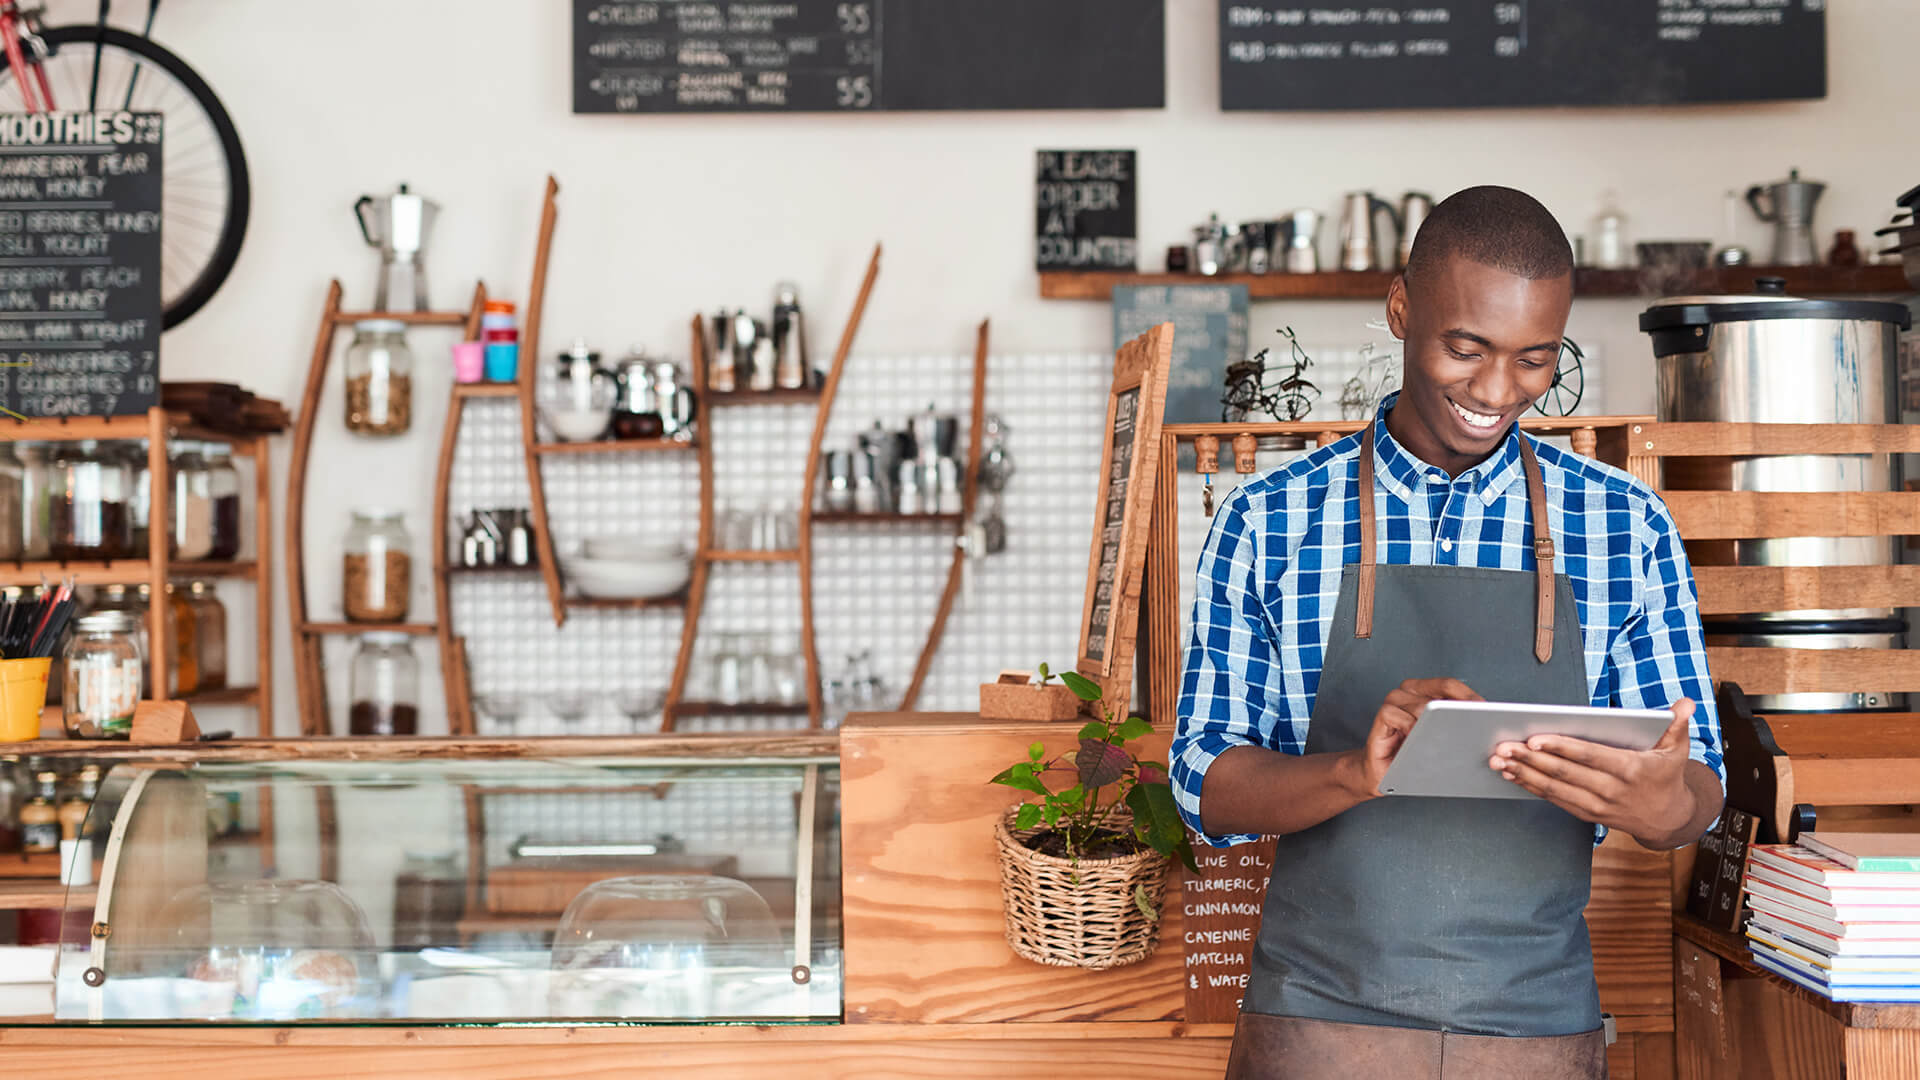 15 Great Small Business Ideas to Start in 2021